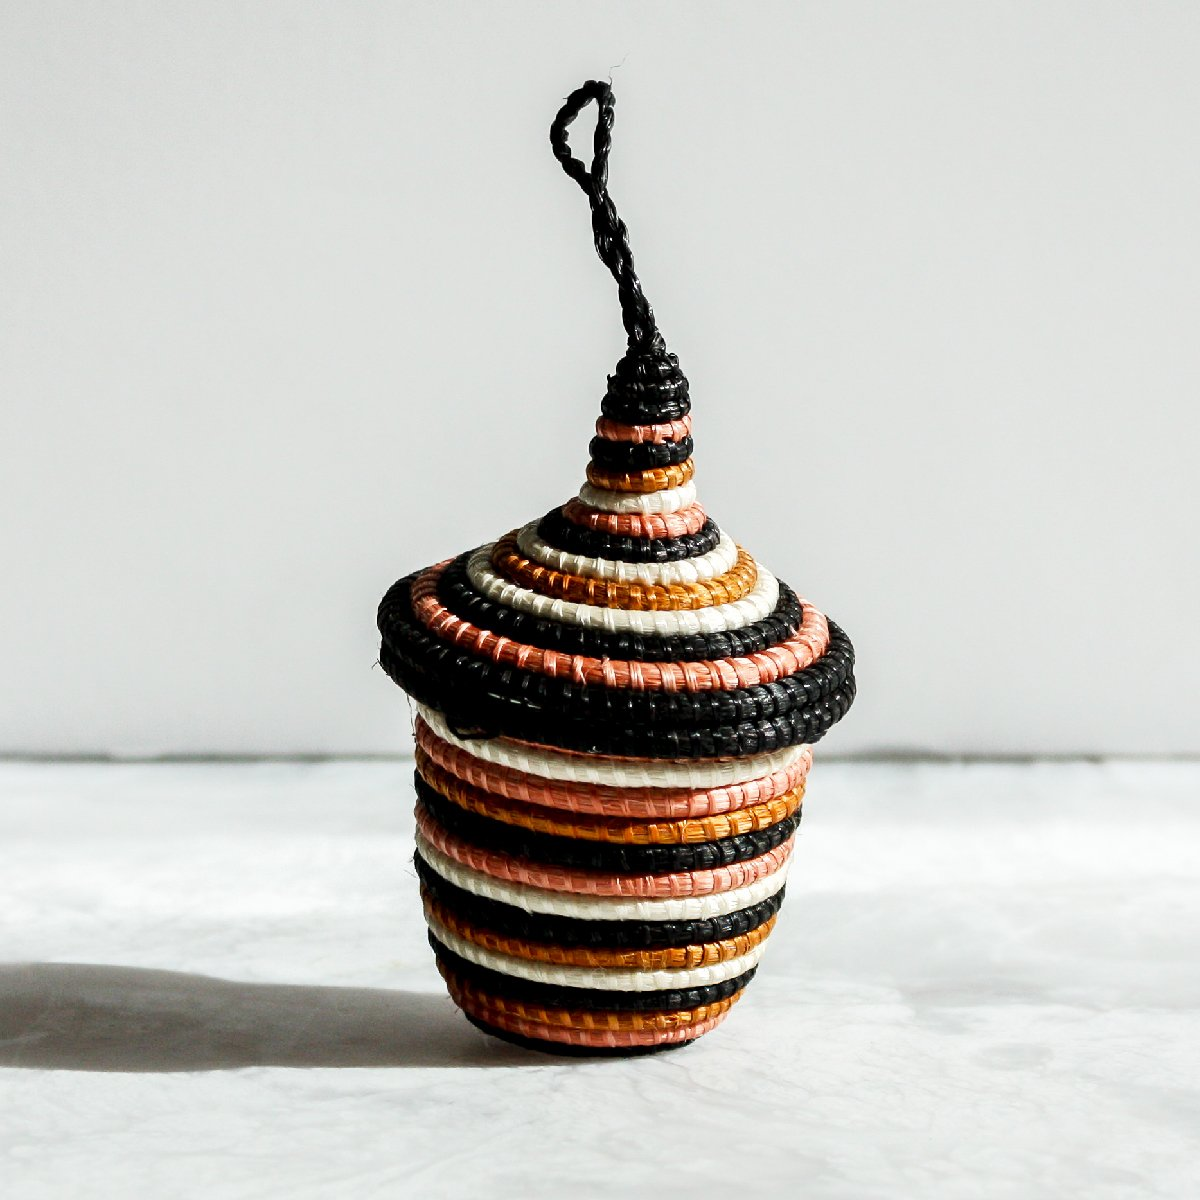 Desert Flower Nya Ornament black stripes made of sisal and sweet grass coral and black by Kazi Goods All Across Africa